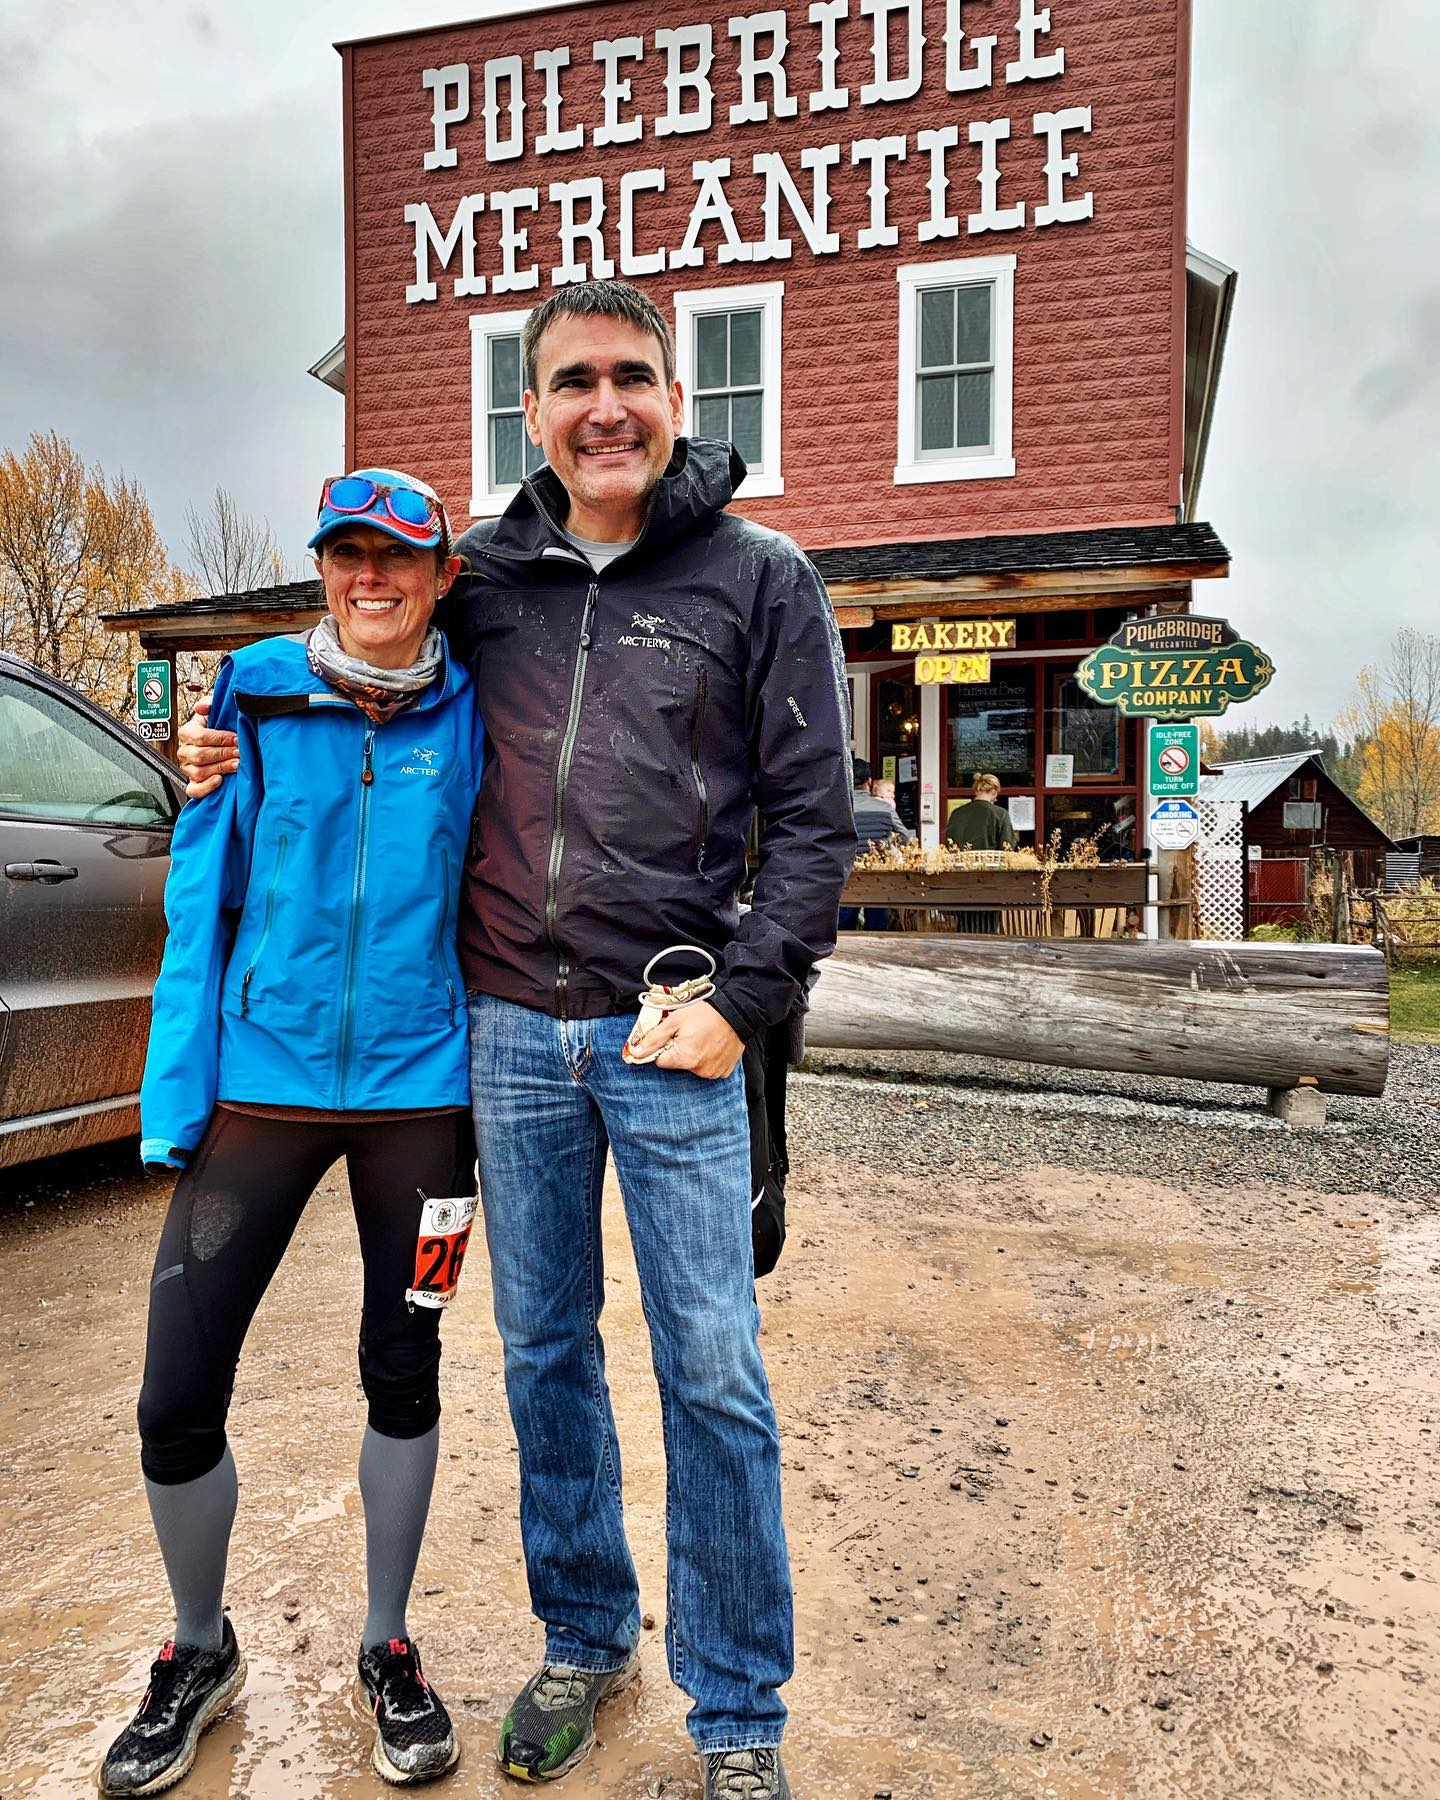 Big thank you to my partner and best friend who brings his family and supports my 50 mile runs in the woods (even if he really does think I'm crazy!) Team Old Montana whitefish custom home builder